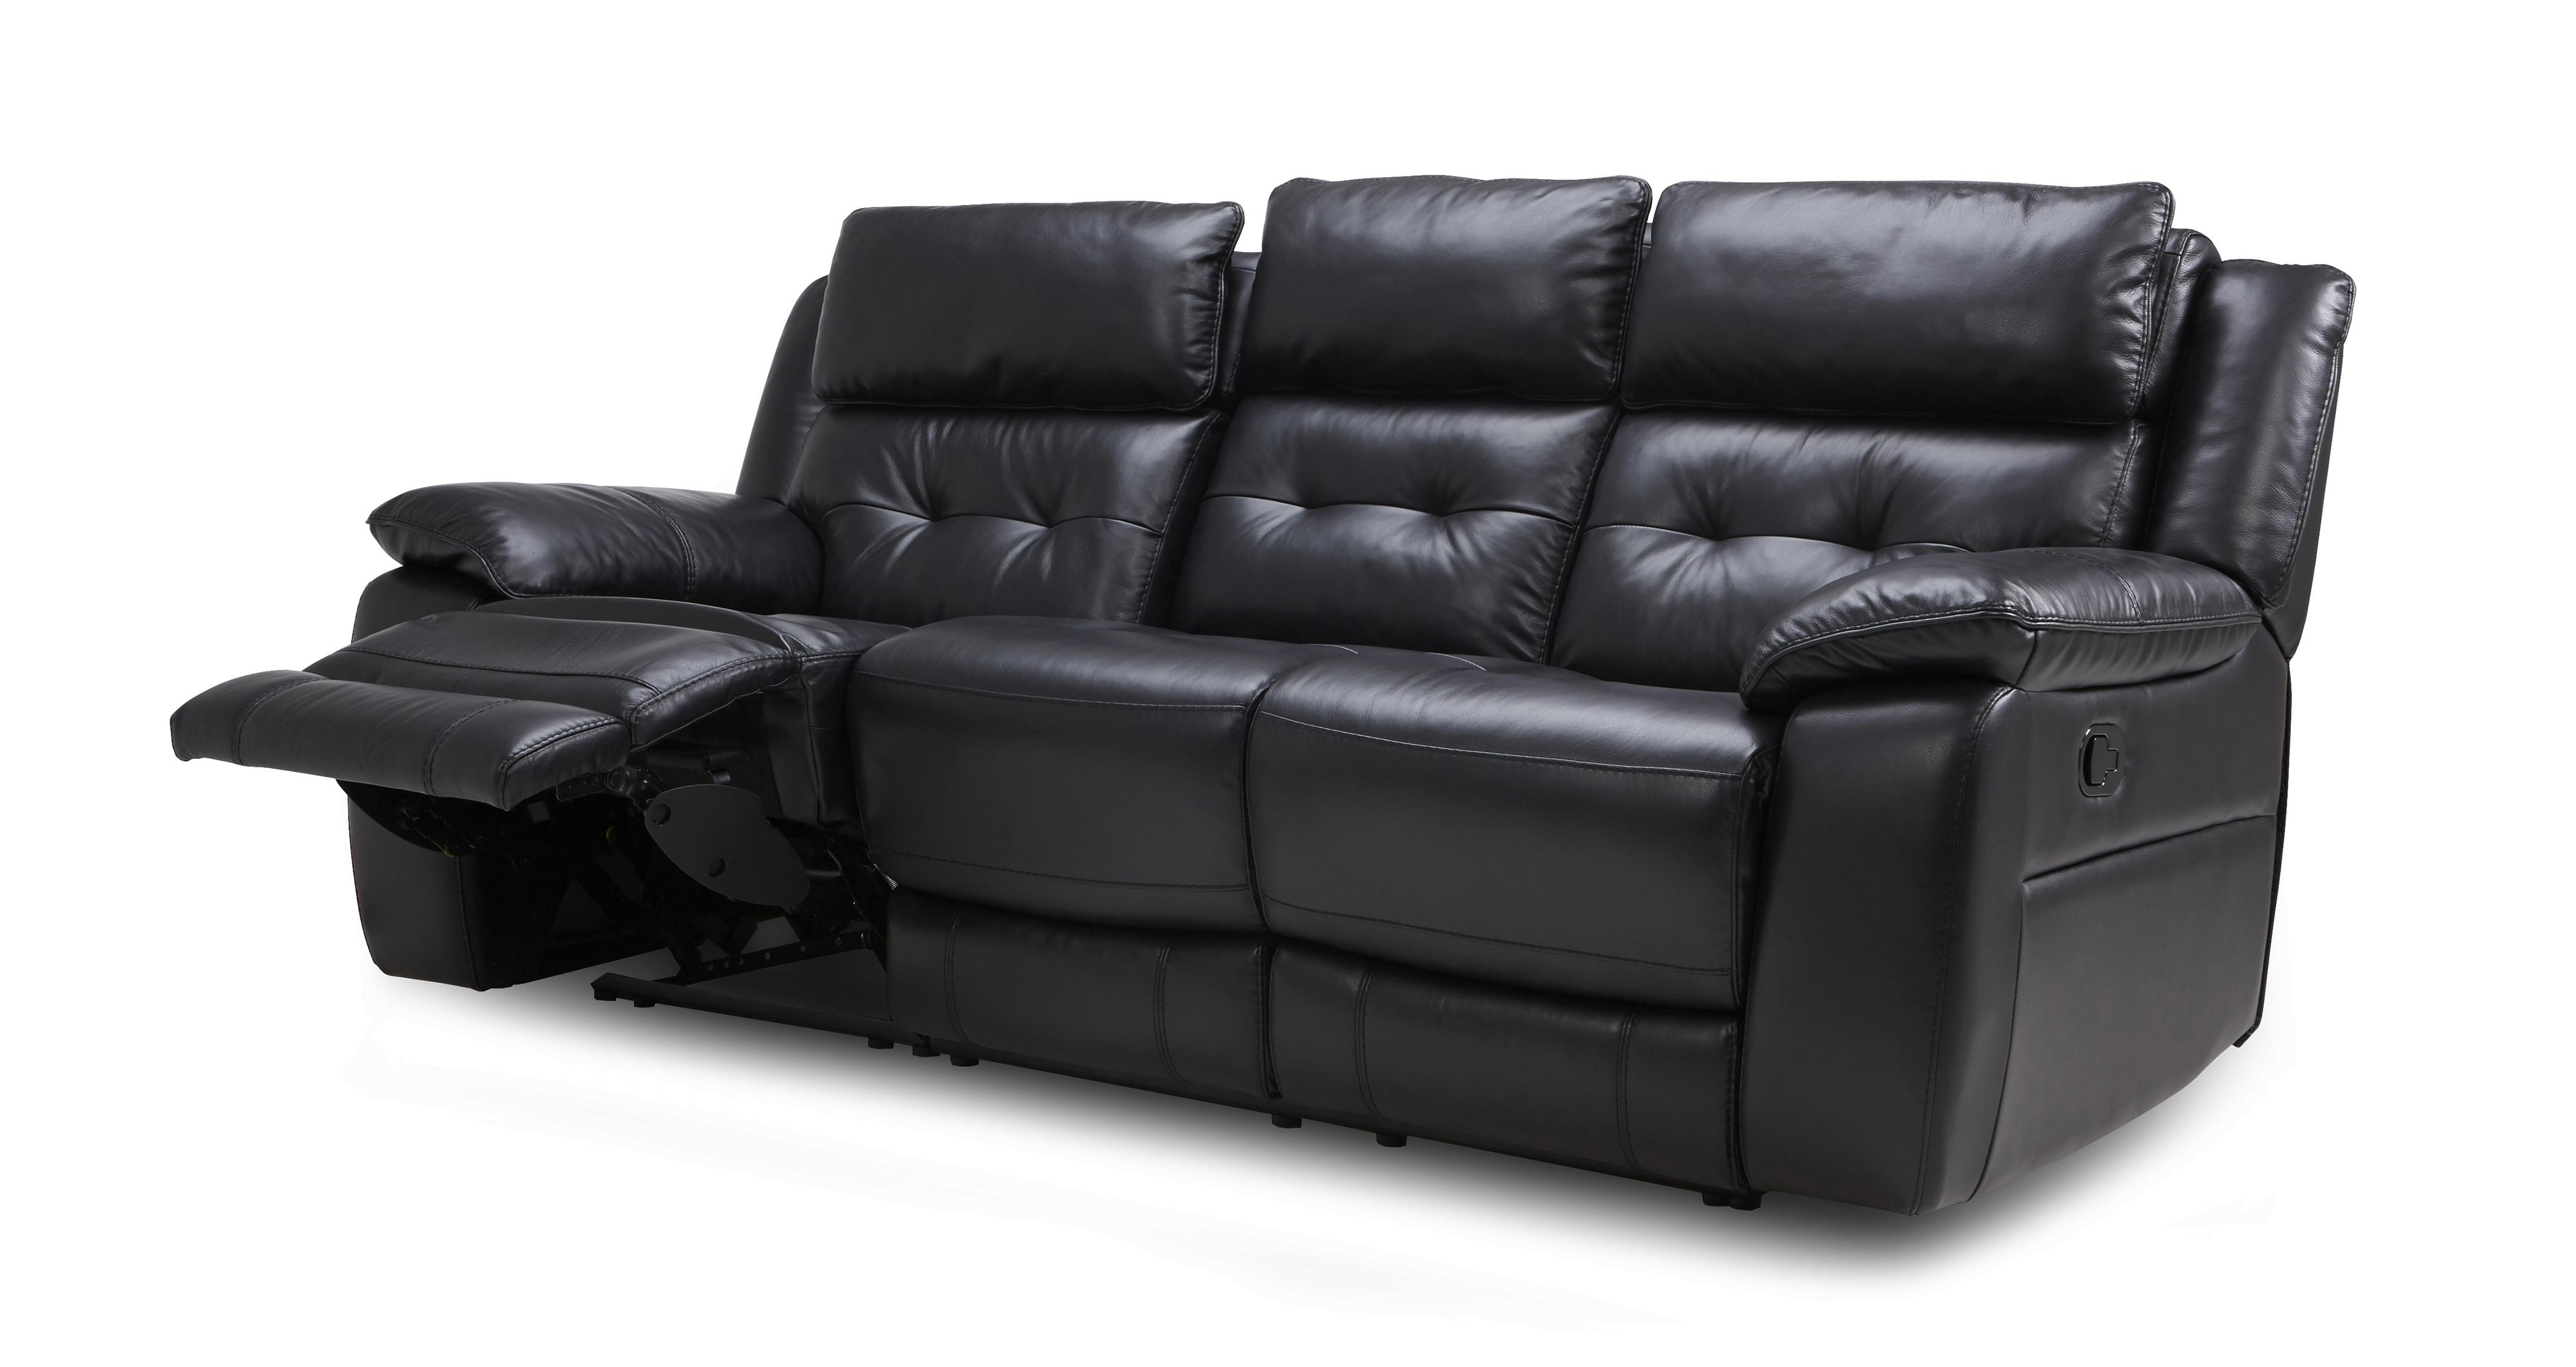 manual leather recliner porto premium seater dfs black chair